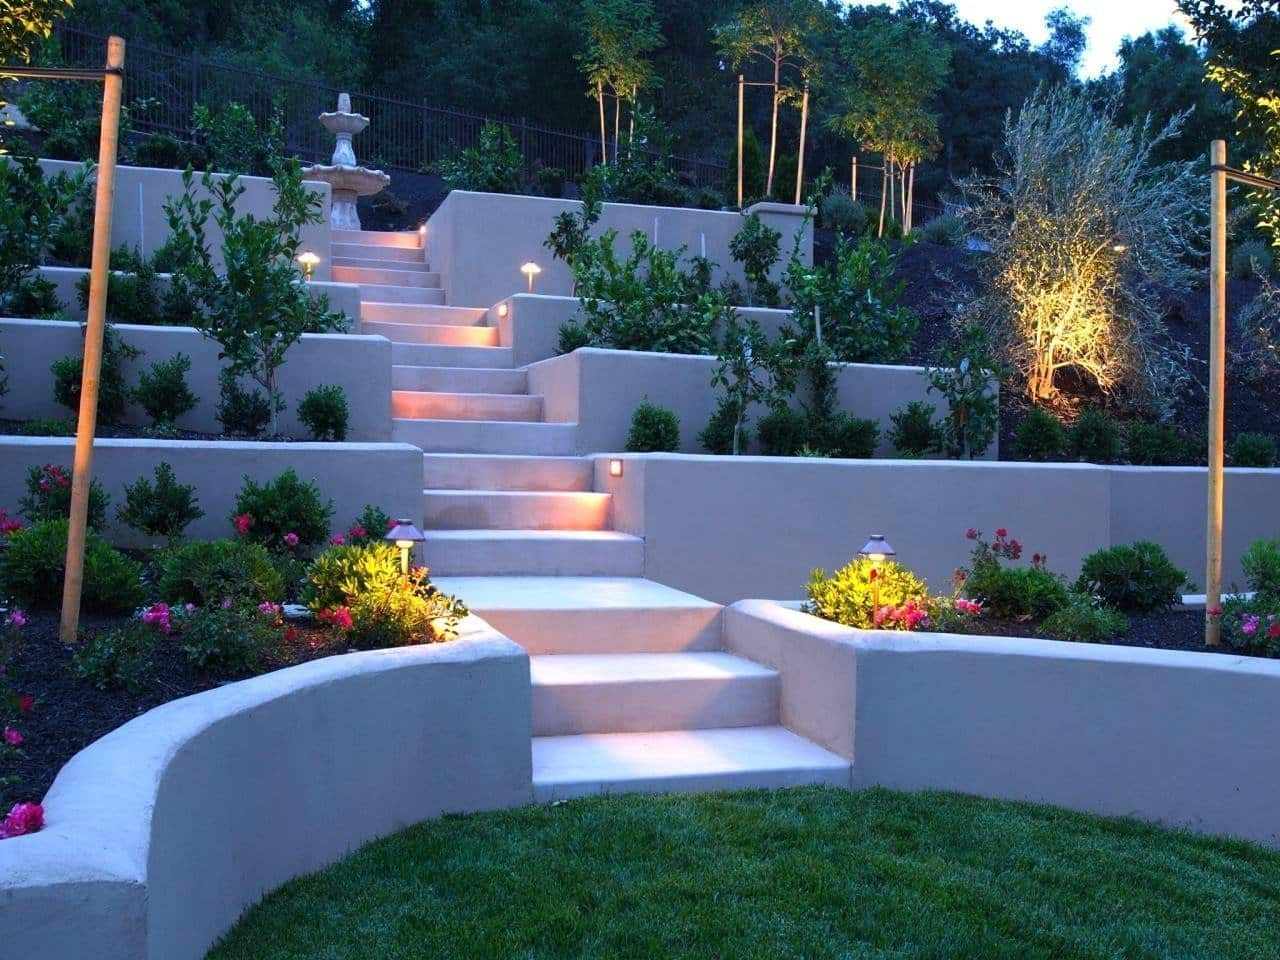 Great amphitheater looking backyard design with LED-lighting and white colored terraces